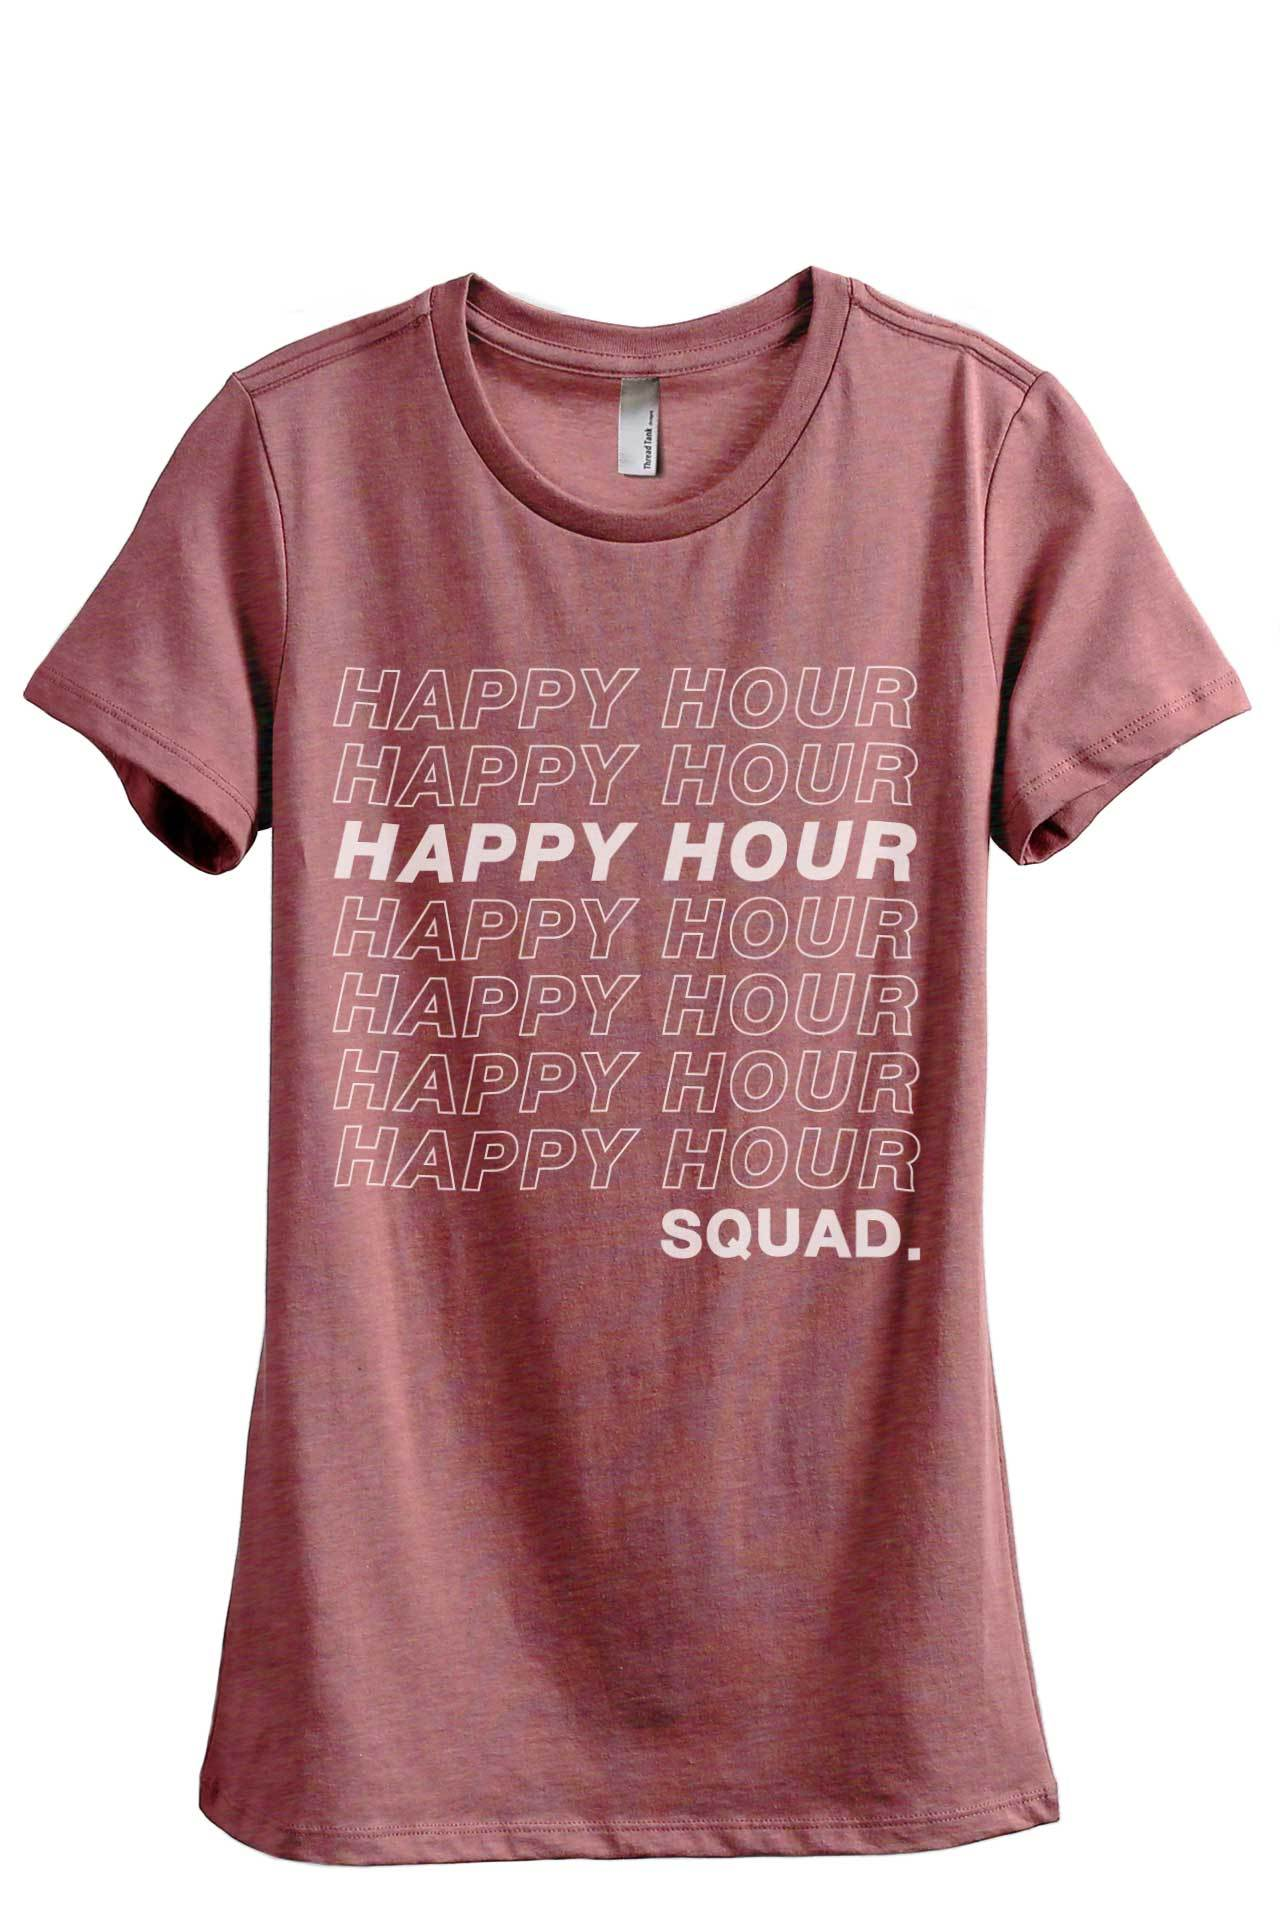 Happy Hour Squad Women's Relaxed Crewneck T-Shirt Top Tee Heather Rouge